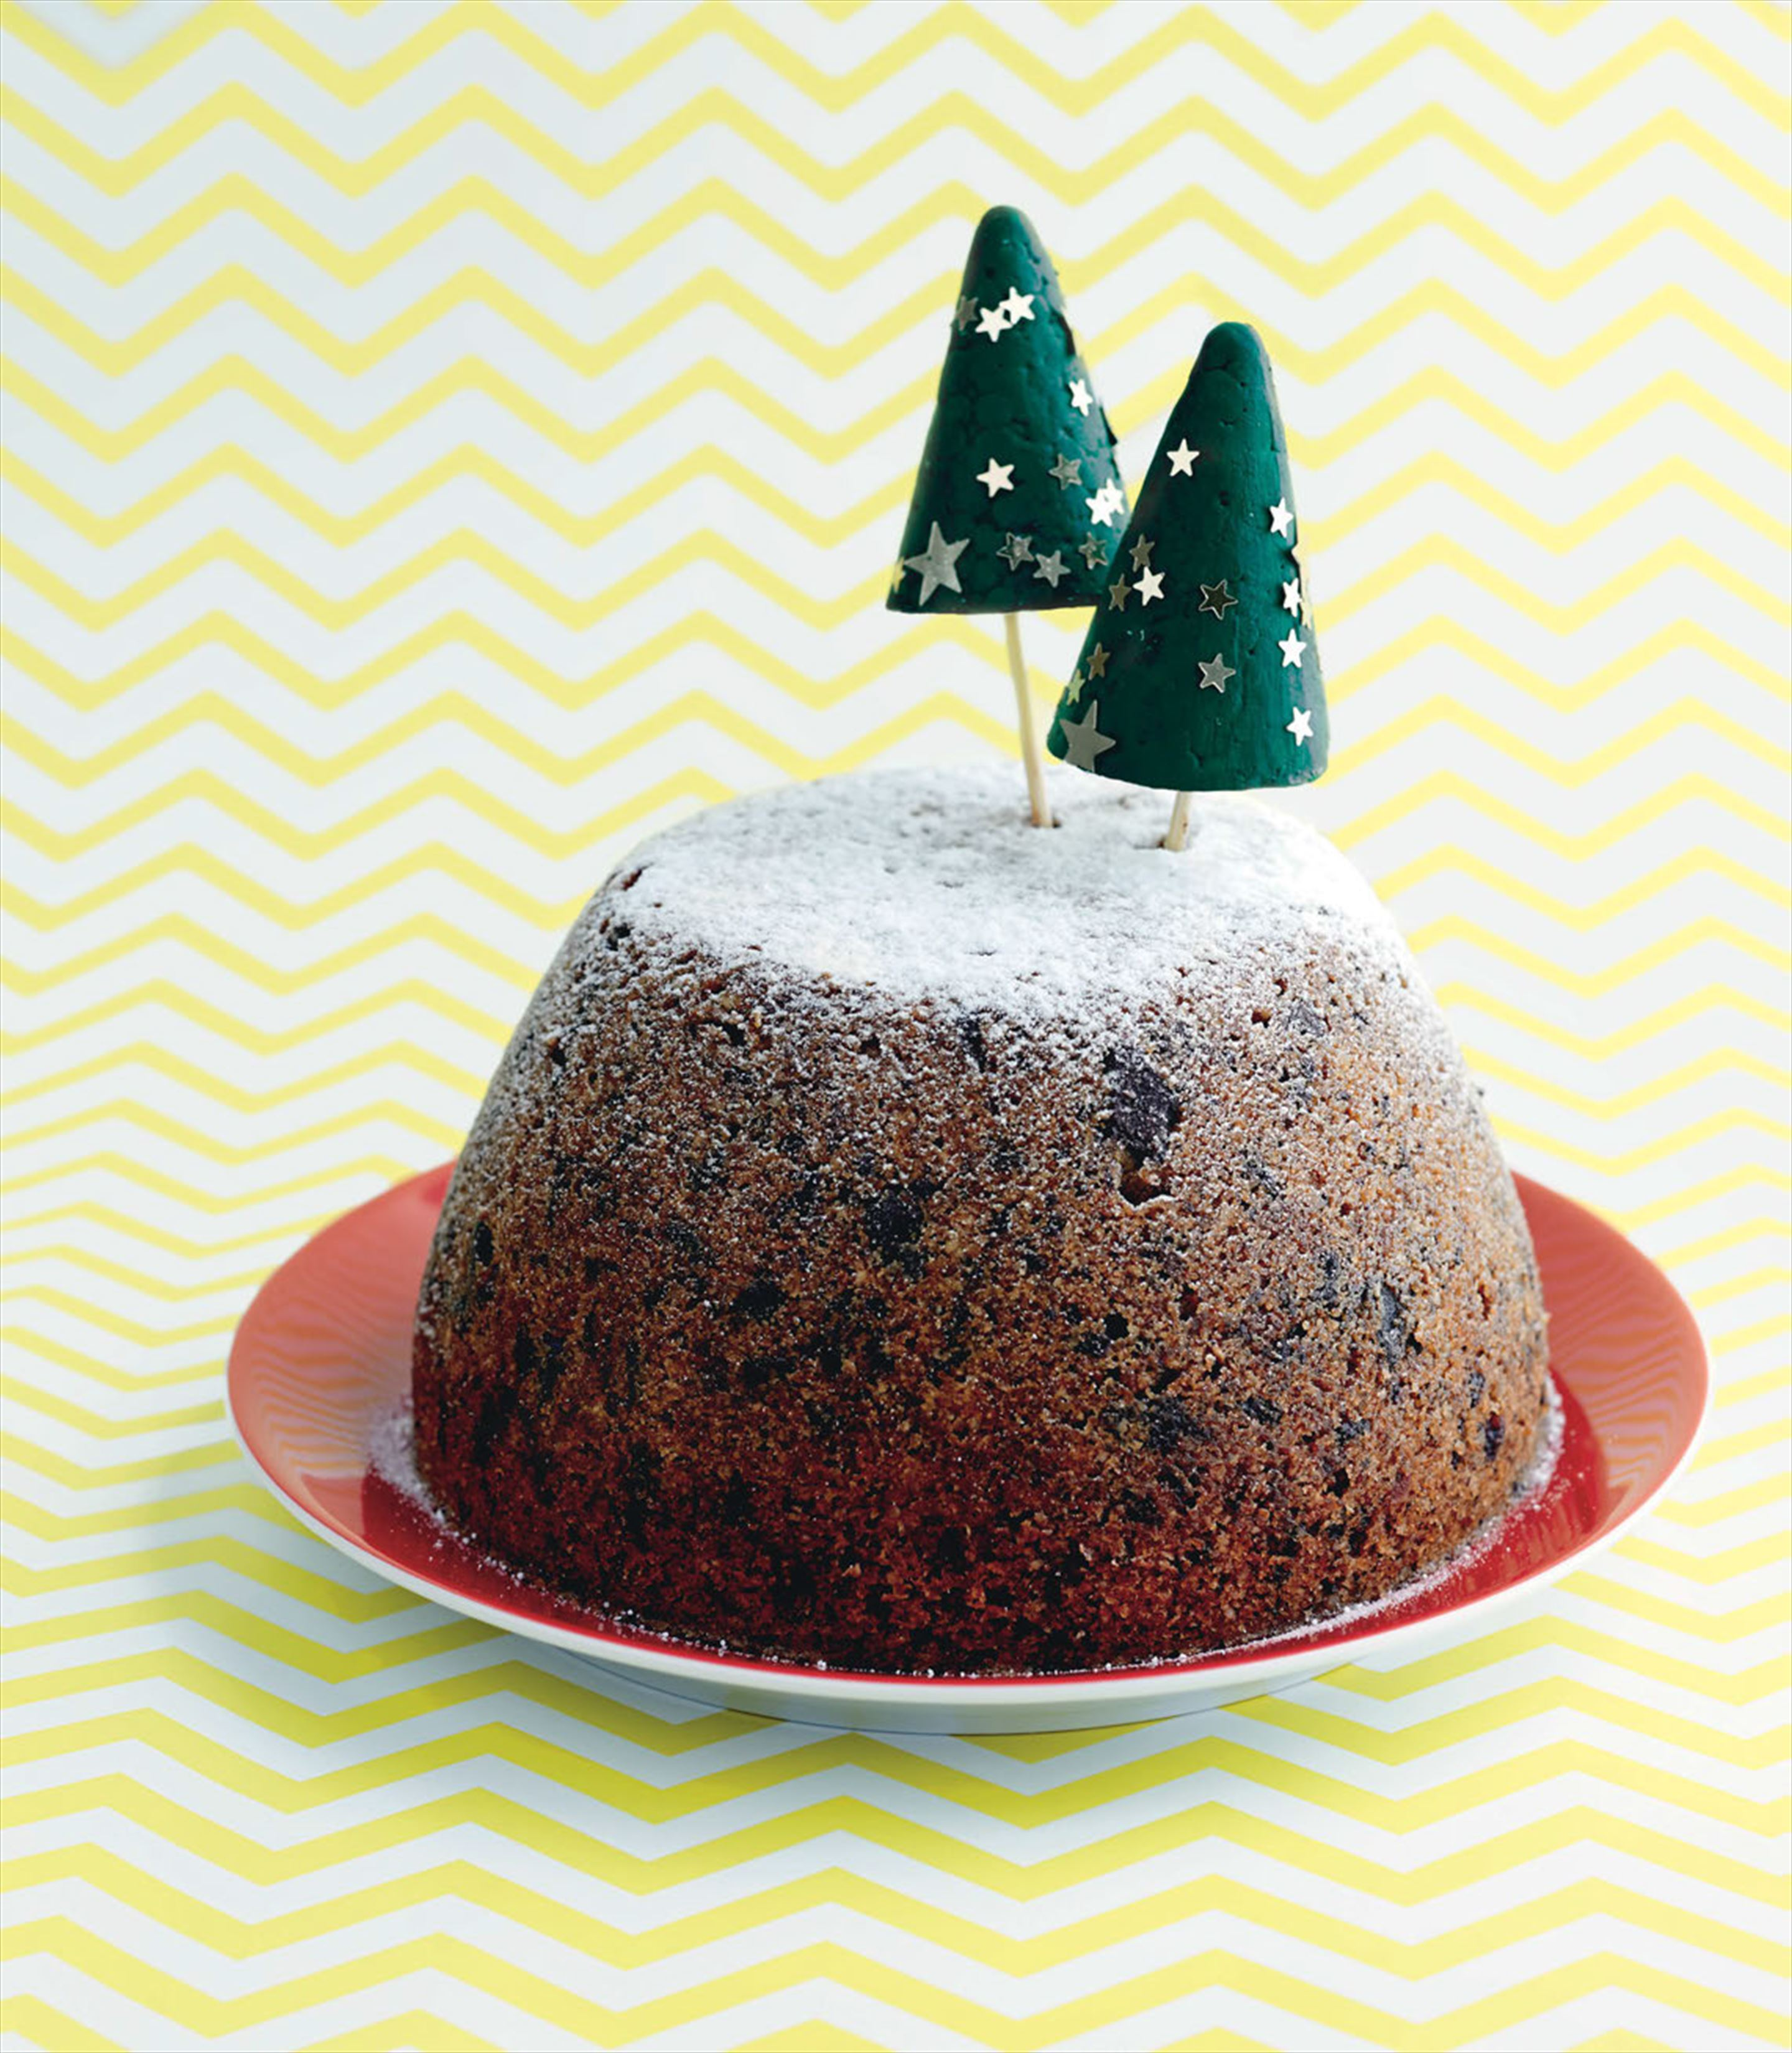 Chocolate and hazelnut Christmas pudding